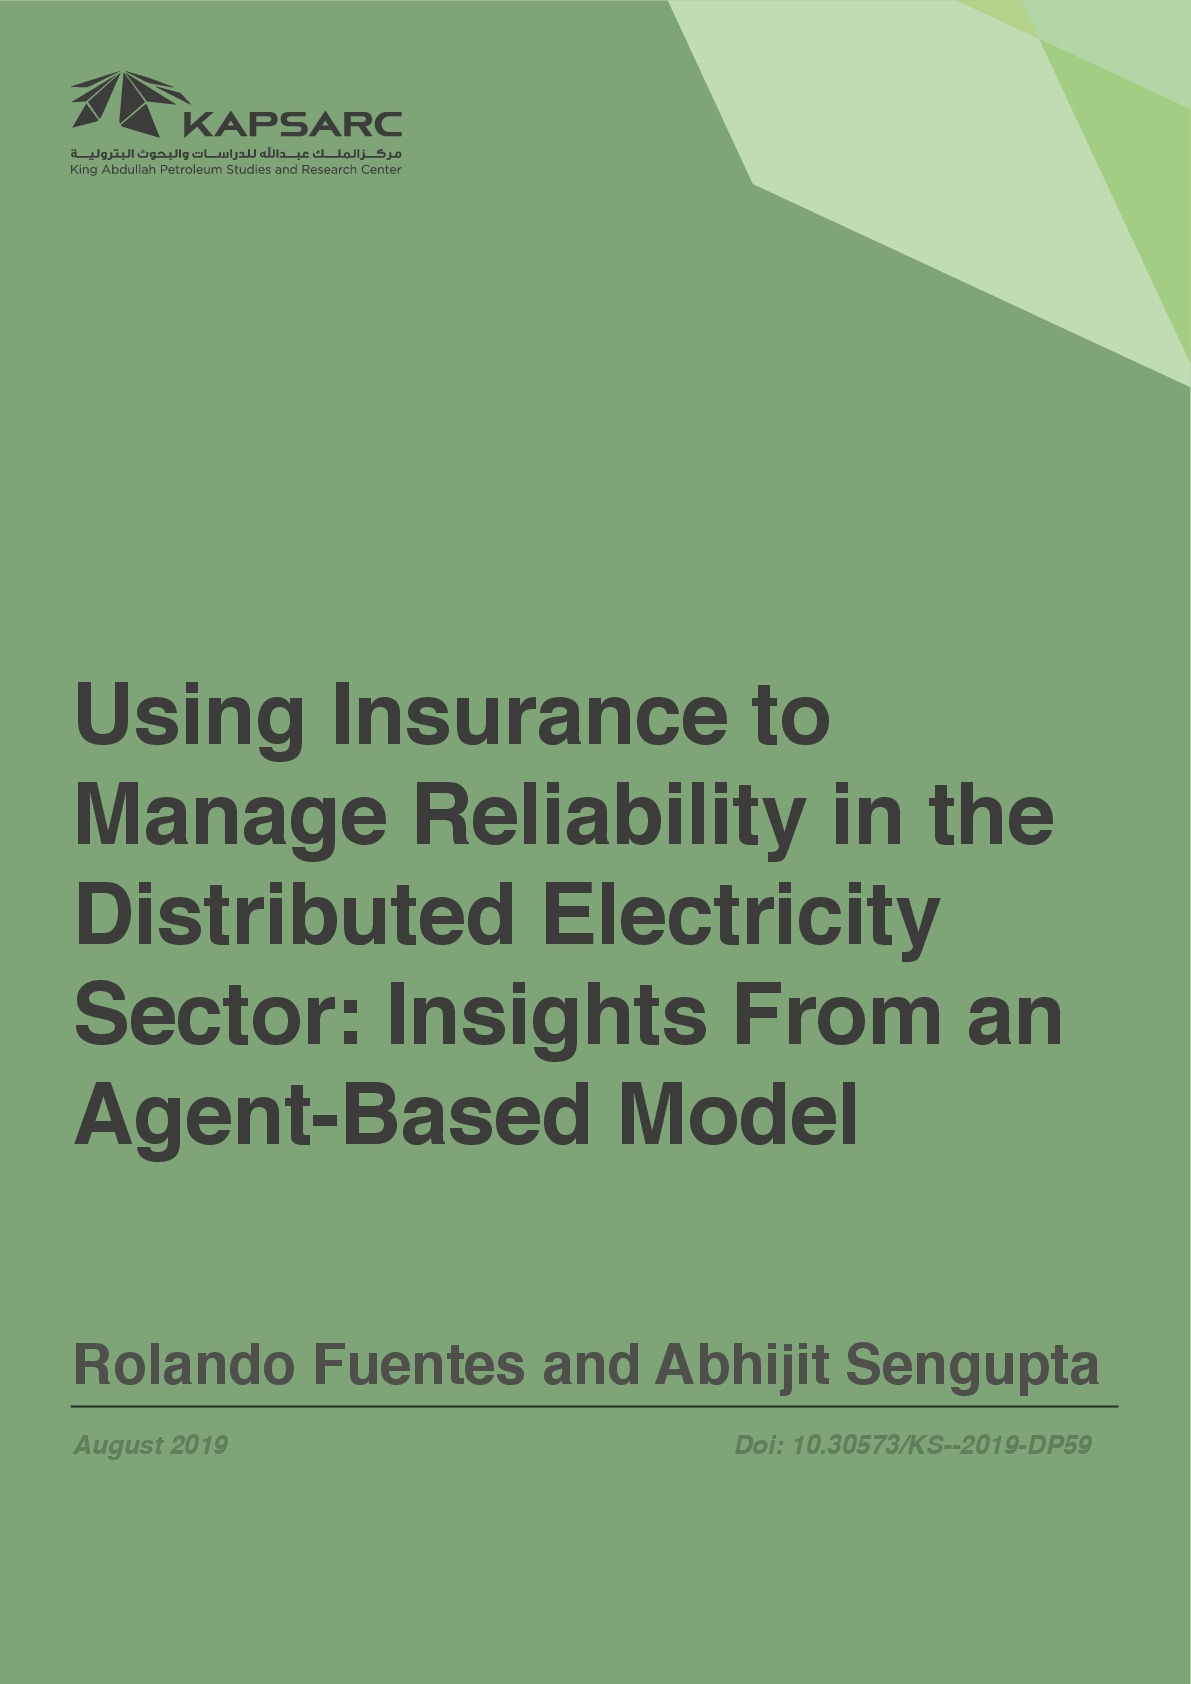 Using Insurance to Manage Reliability in the Distributed Electricity Sector: Insights From an Agent-Based Model